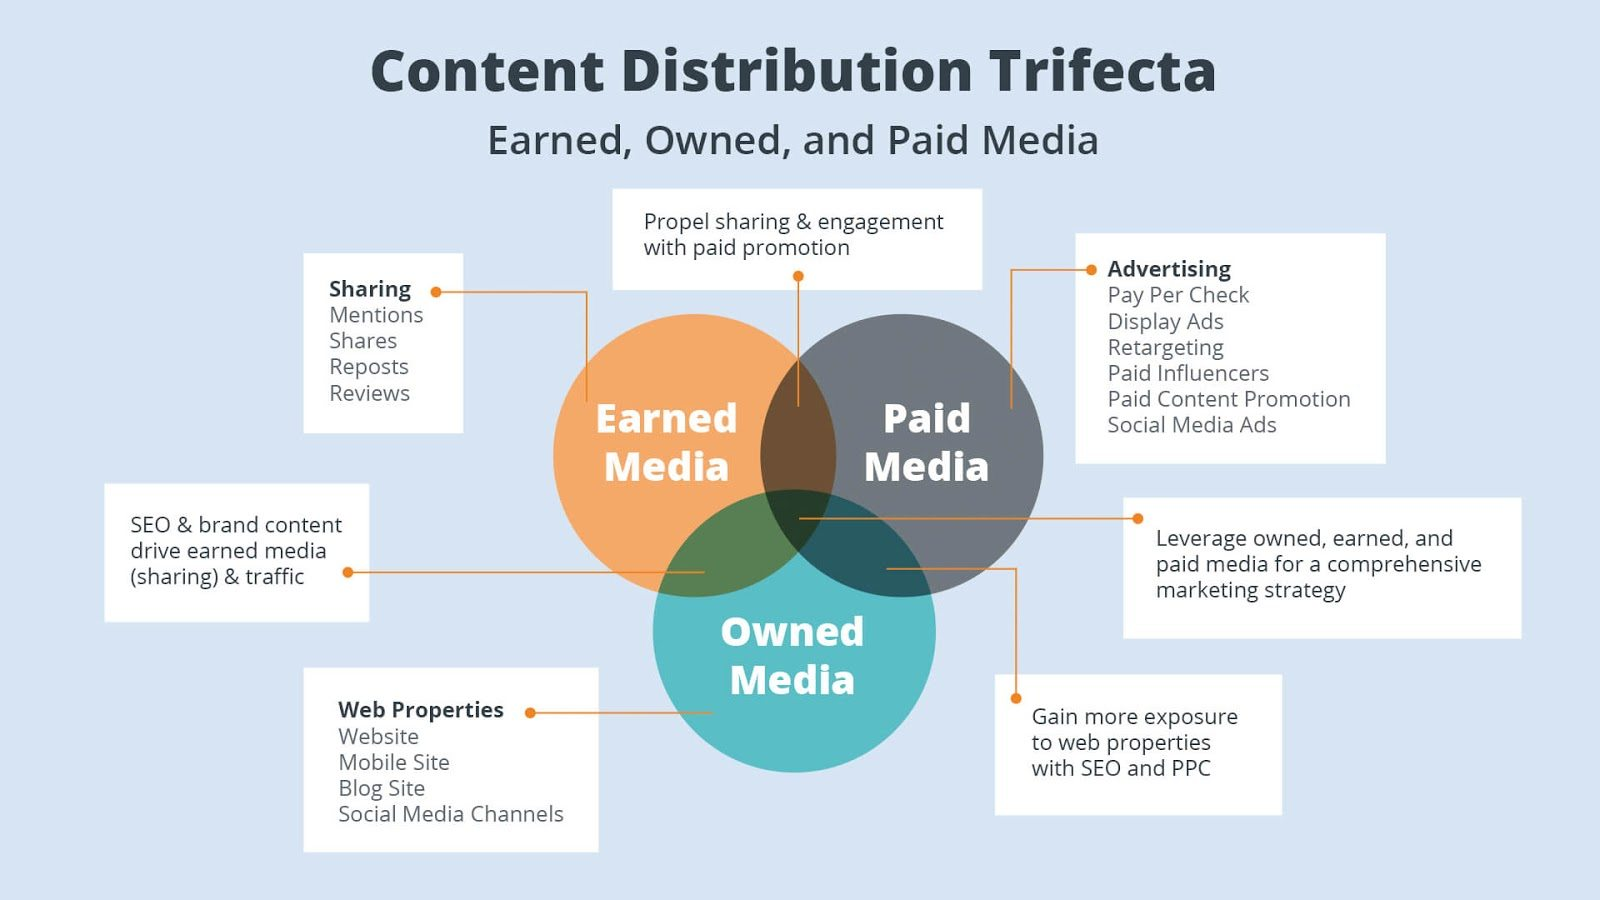 A chart showing Content Distribution by Earned, Owned & Paid Media